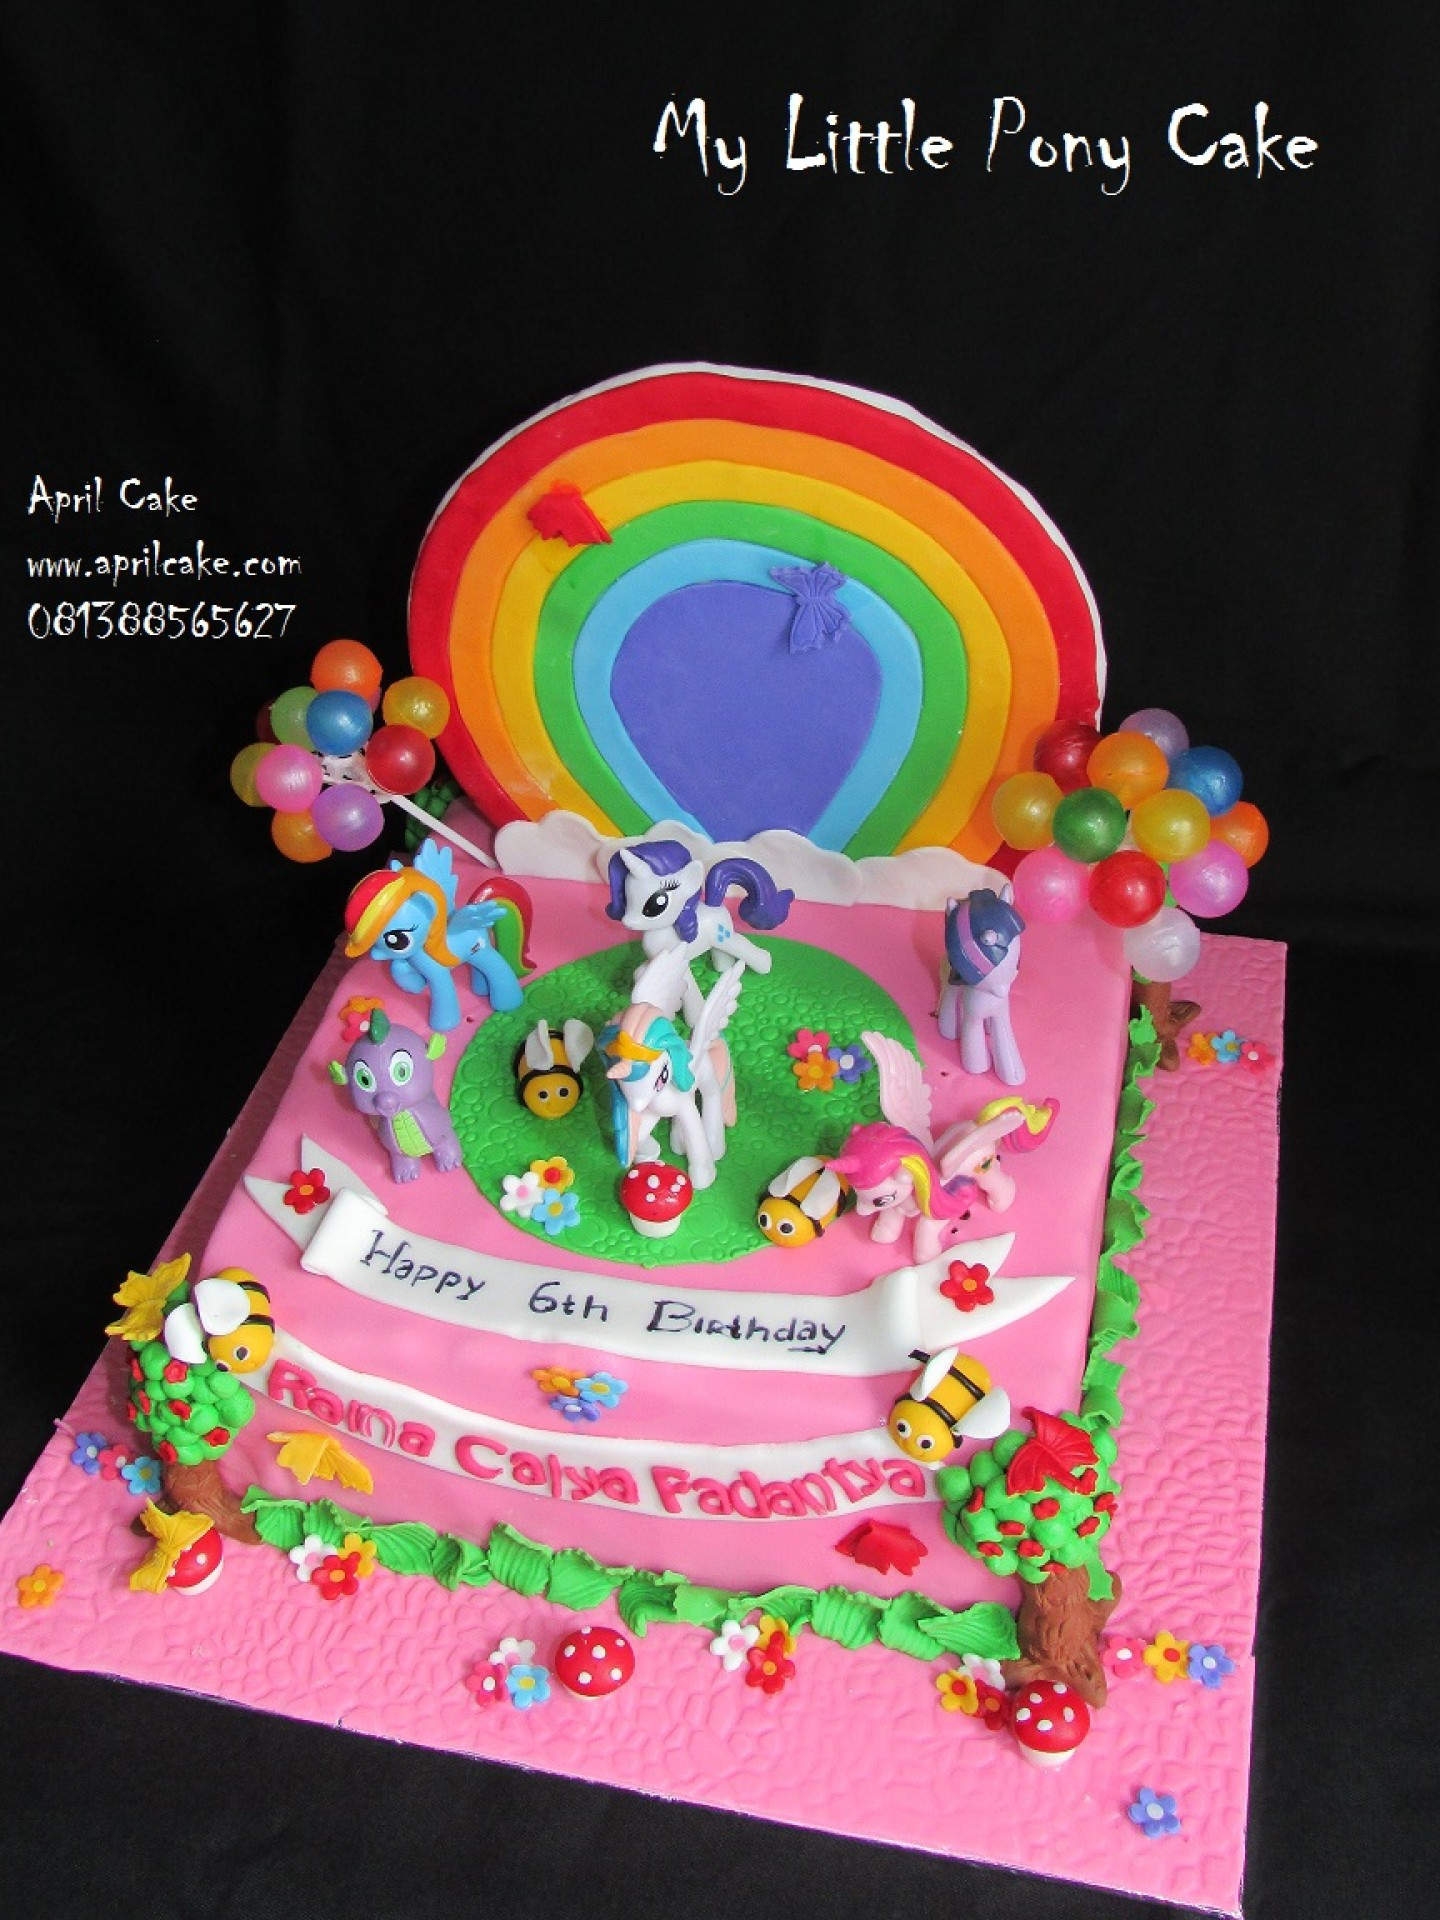 My Little Pony April Cake